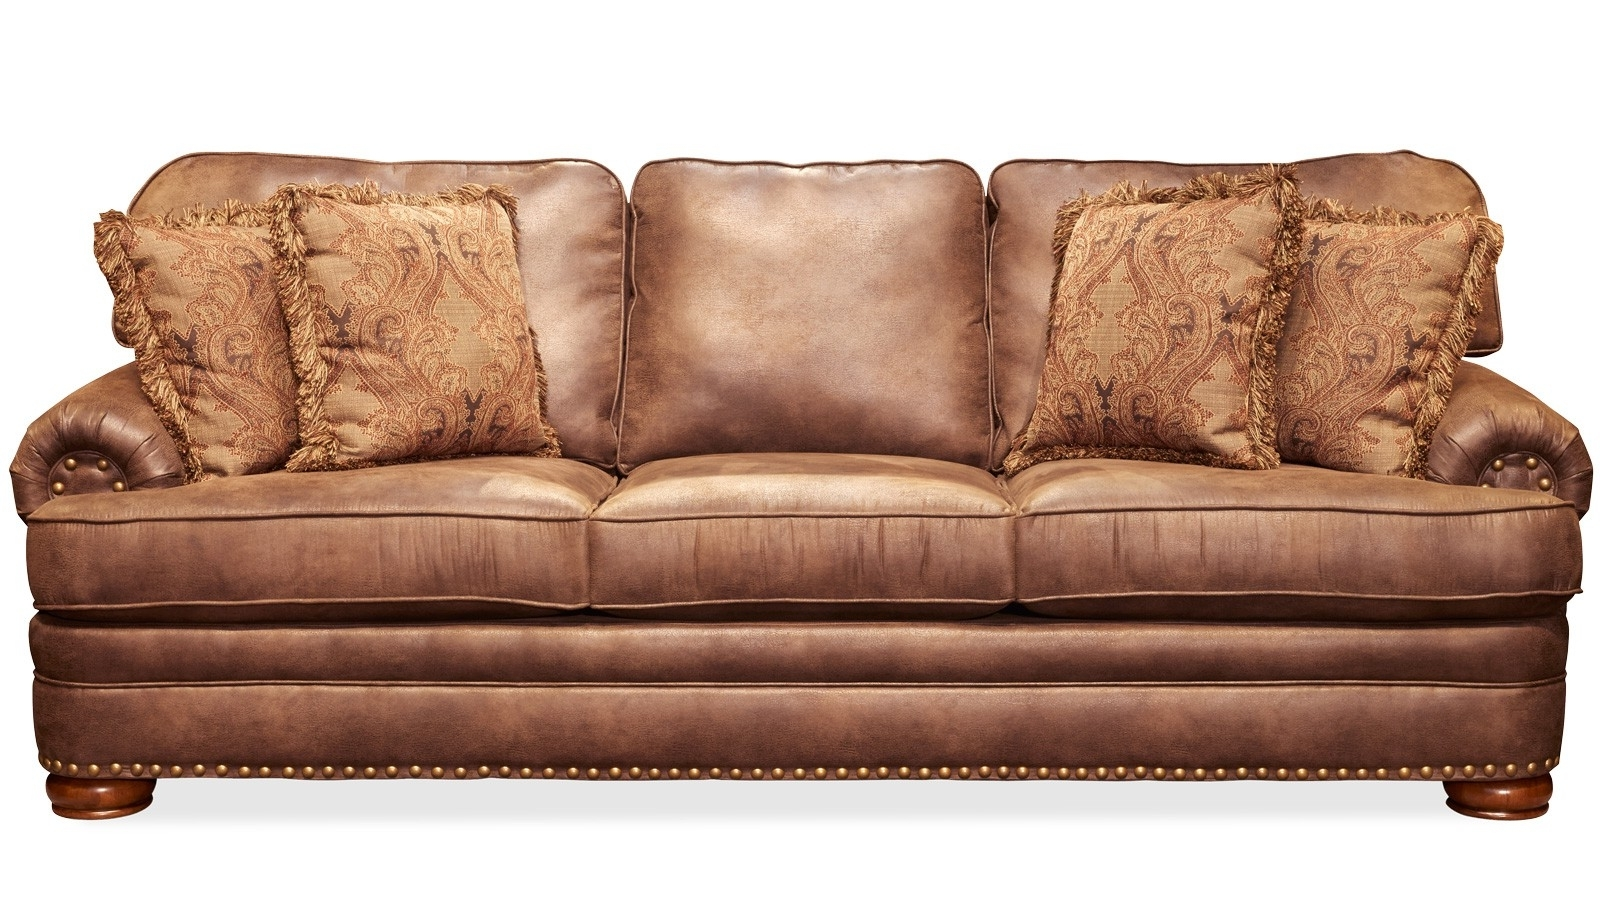 Gallery Furniture Inside Latest El Paso Texas Sectional Sofas (Gallery 8 of 20)